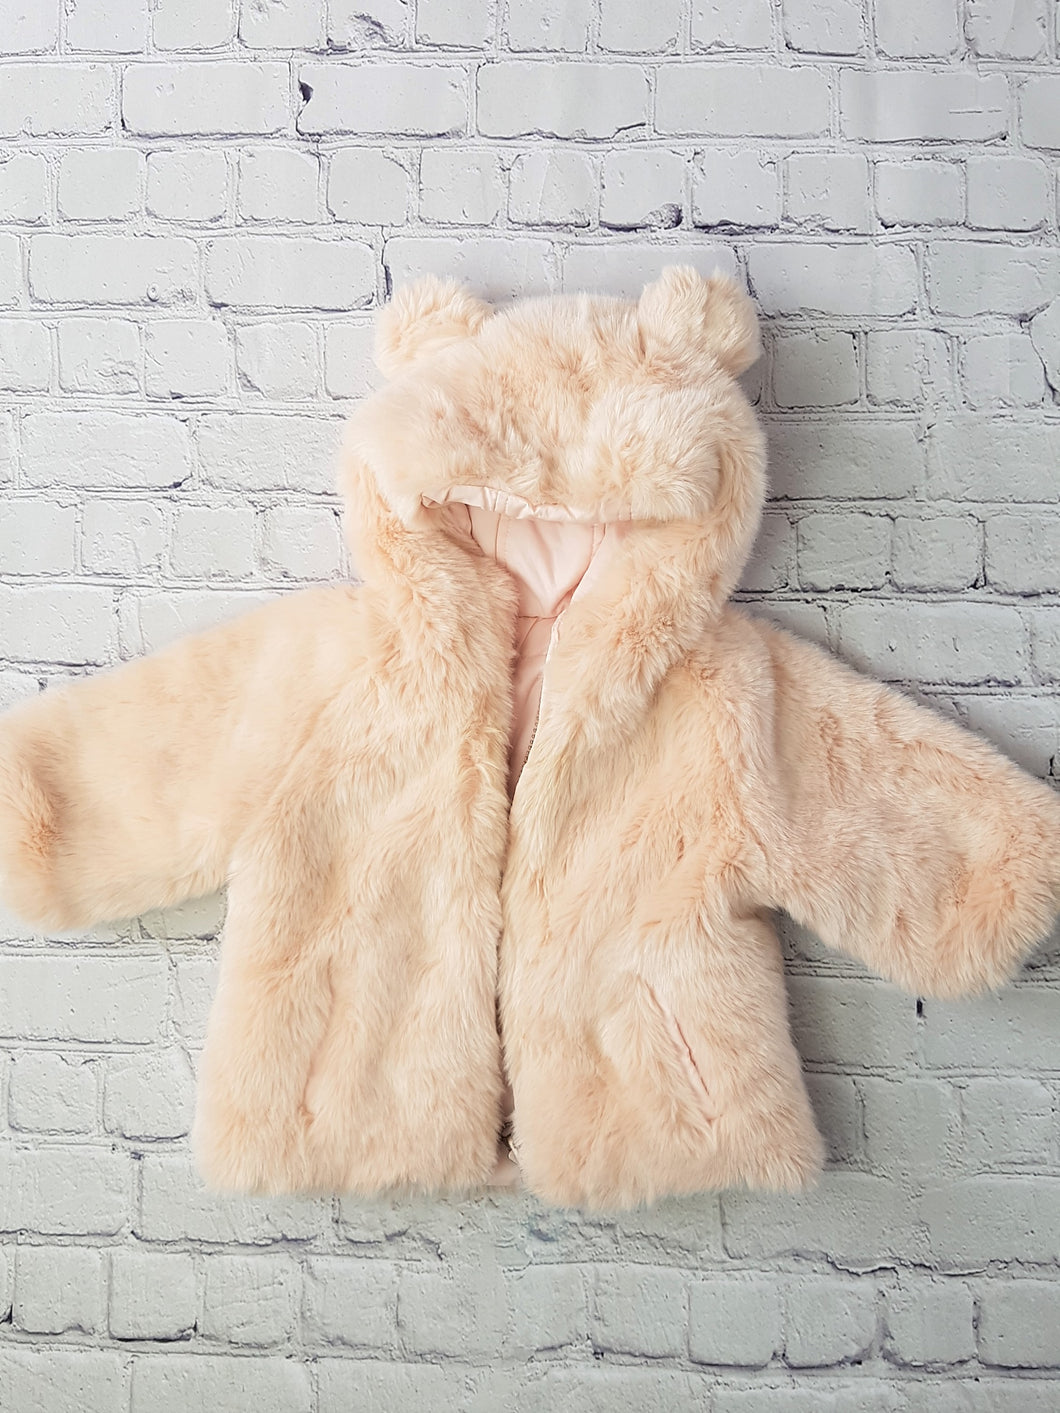 fur coat pink baby 3 mois manteau en fourrure rose bebe 3 mois family affaire occasion vetement bebe